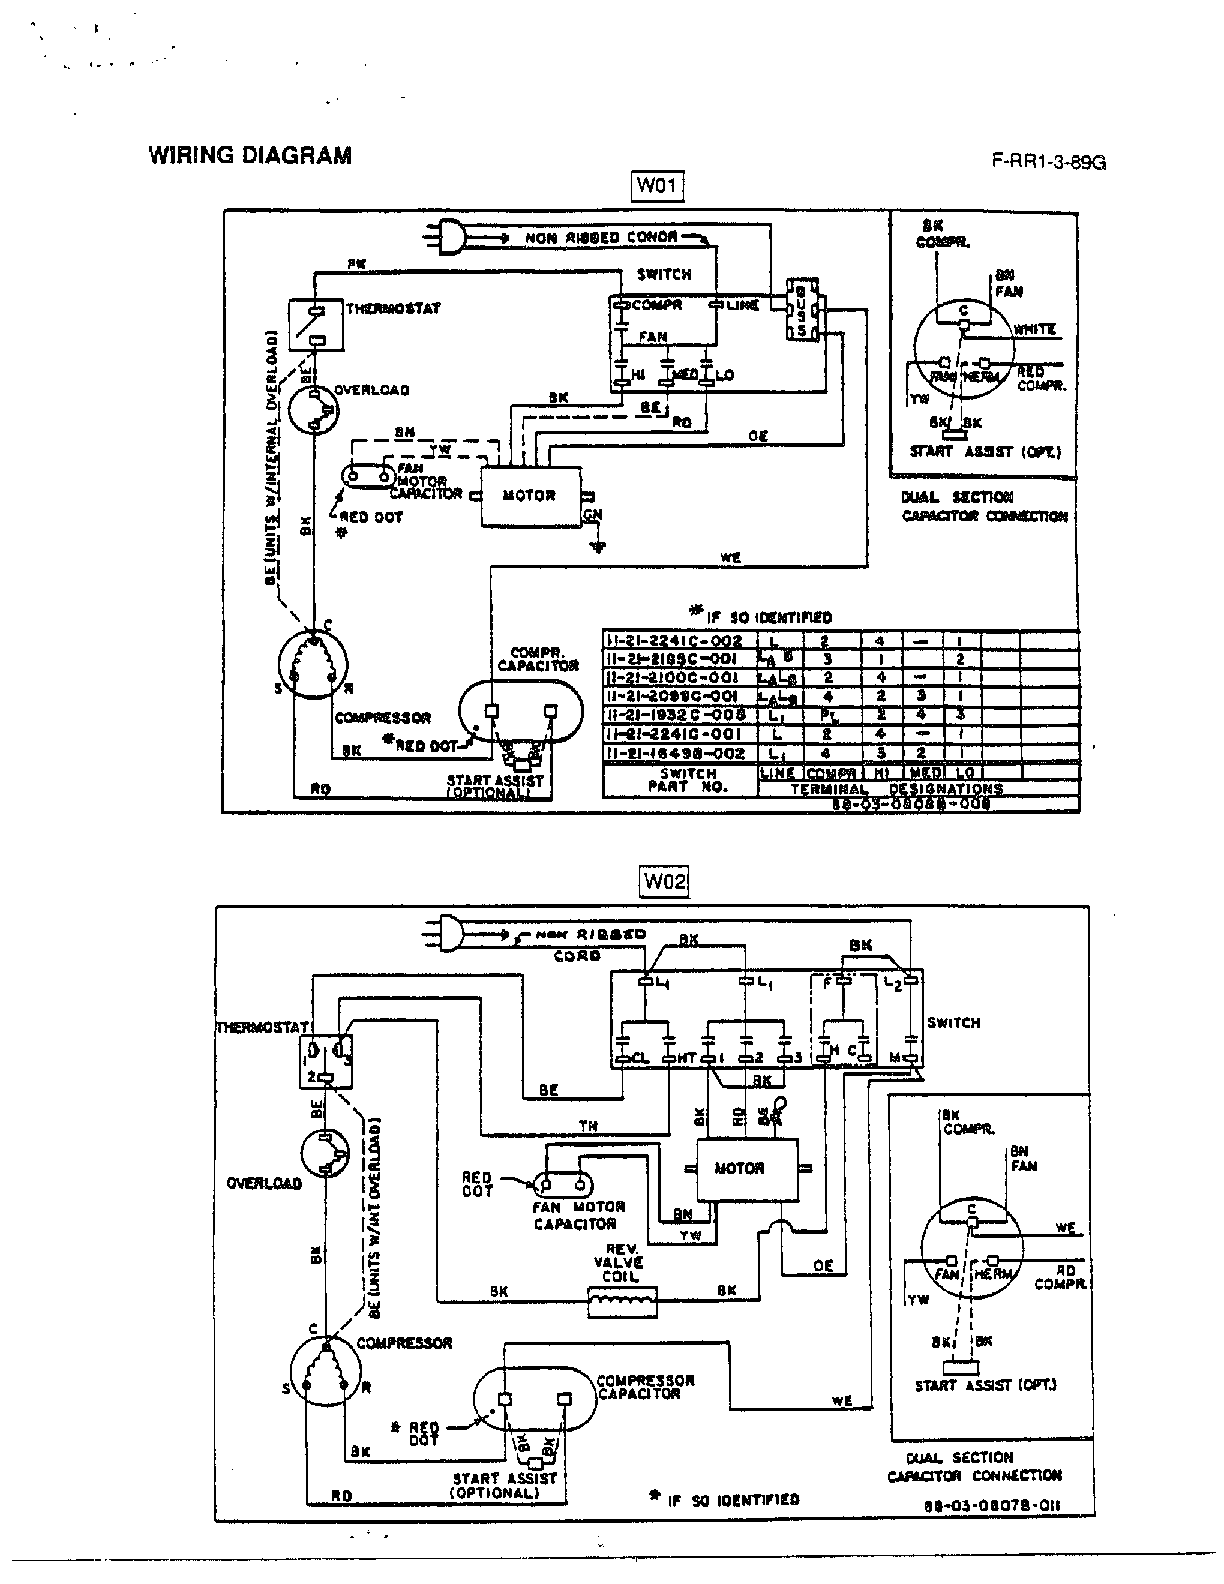 Brisk Air Air Conditioner Wiring Diagram